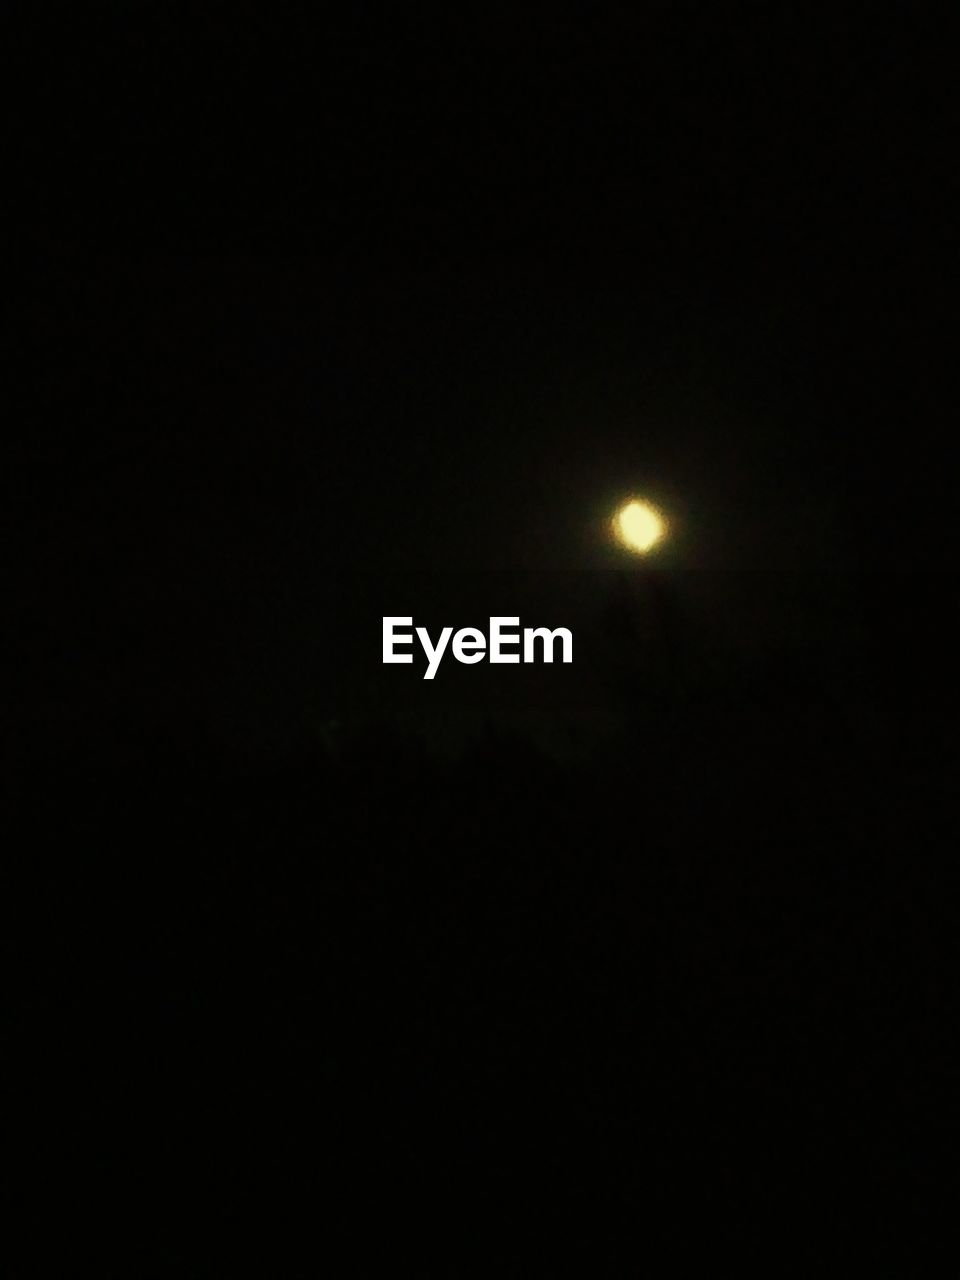 moon, astronomy, night, space, dark, scenics, solar eclipse, nature, moon surface, beauty in nature, crescent, no people, half moon, moonlight, space exploration, natural phenomenon, outdoors, illuminated, sky, satellite view